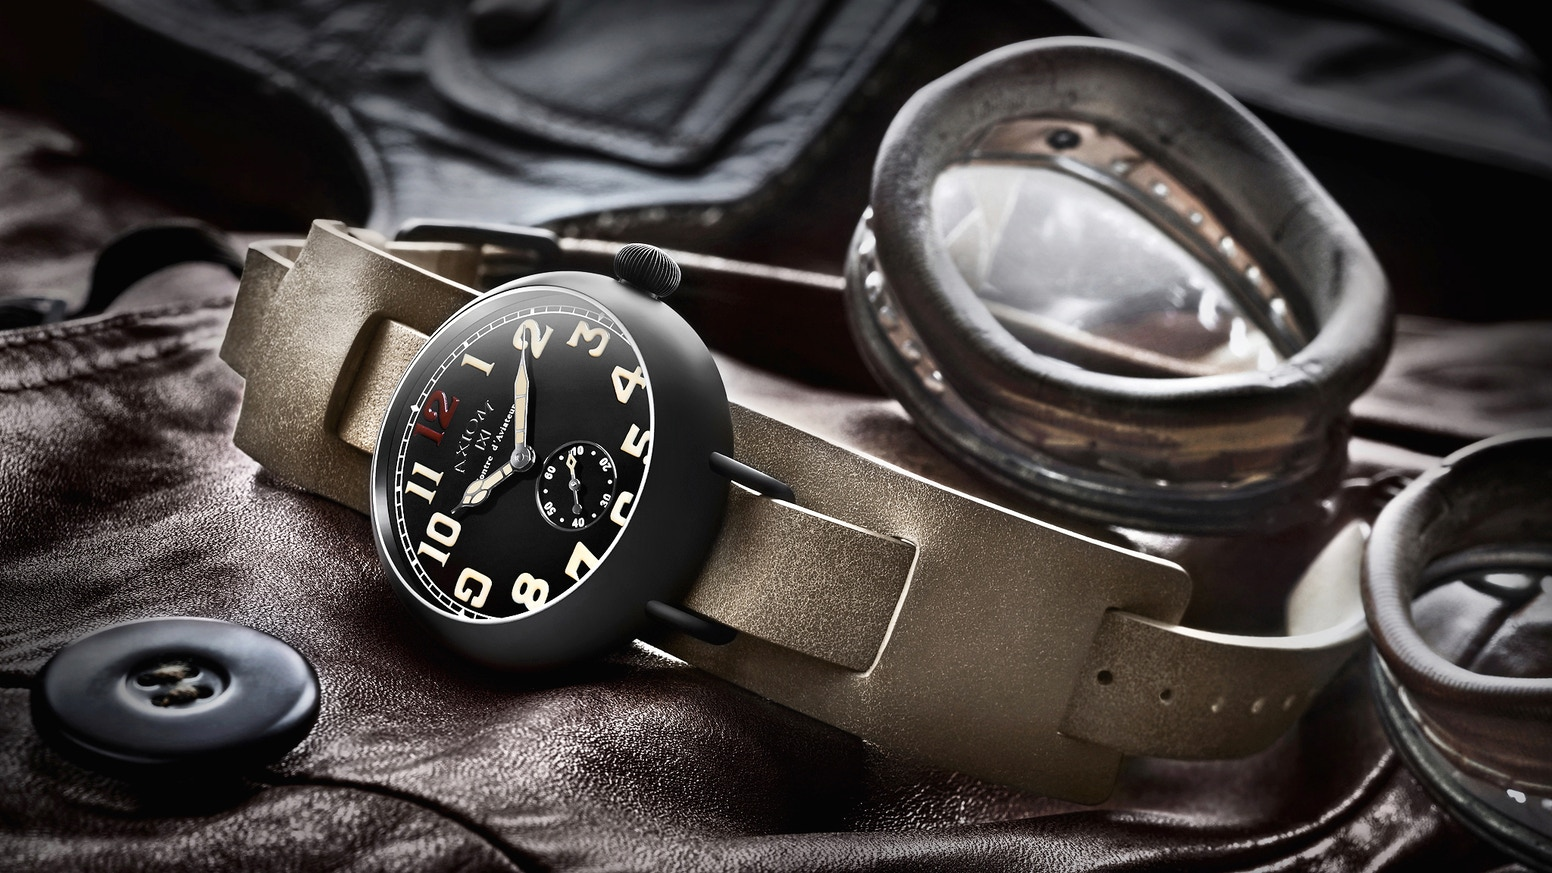 Catching the true spirit of WWI Knights of the Air, and powered by a Swiss Made Sellita SW 260-1. Meet our ultimate Automatic Watch.